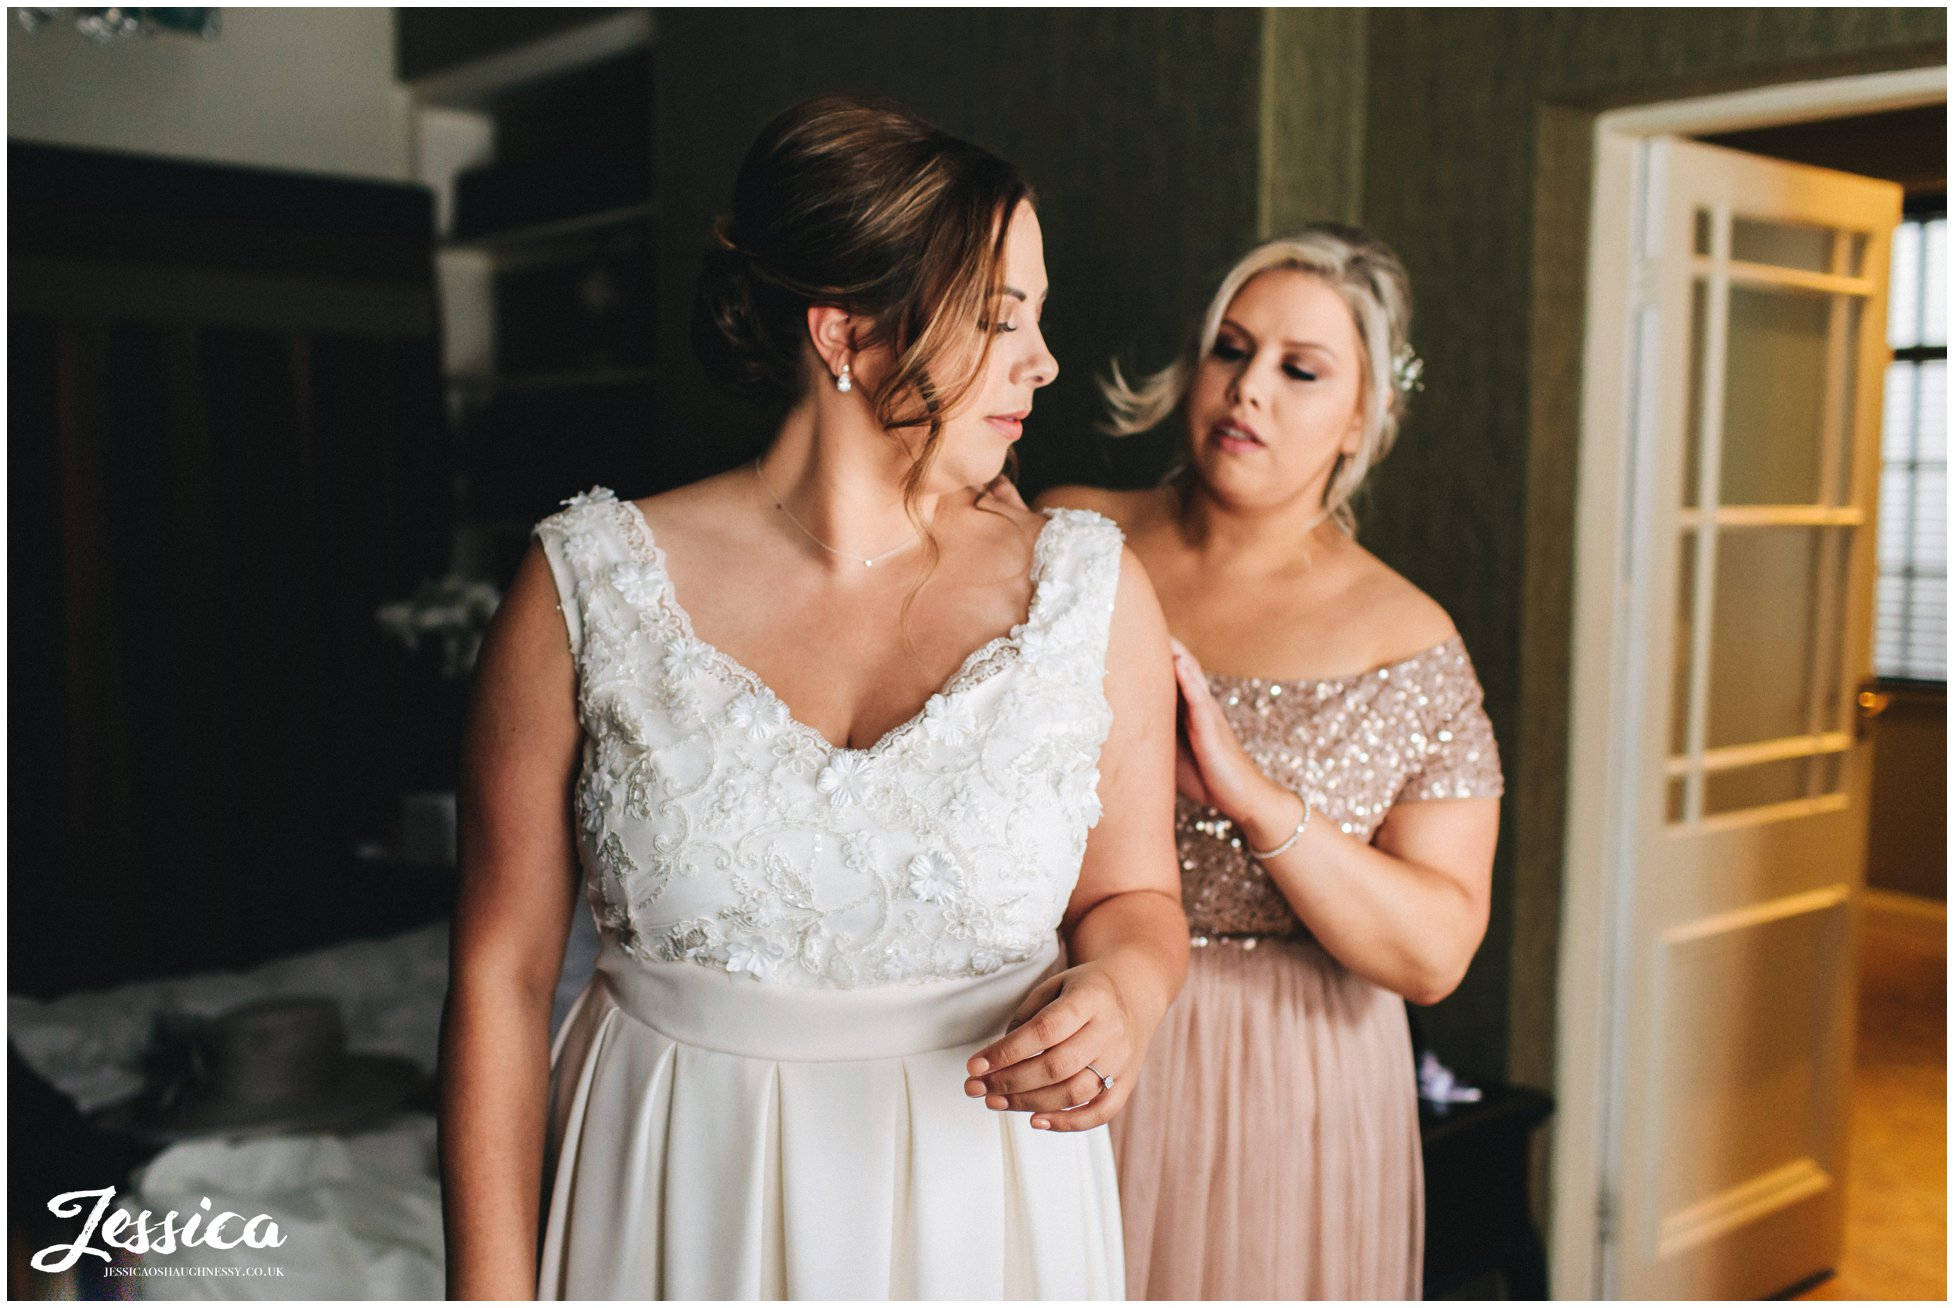 sister helps the bride into her wedding dress